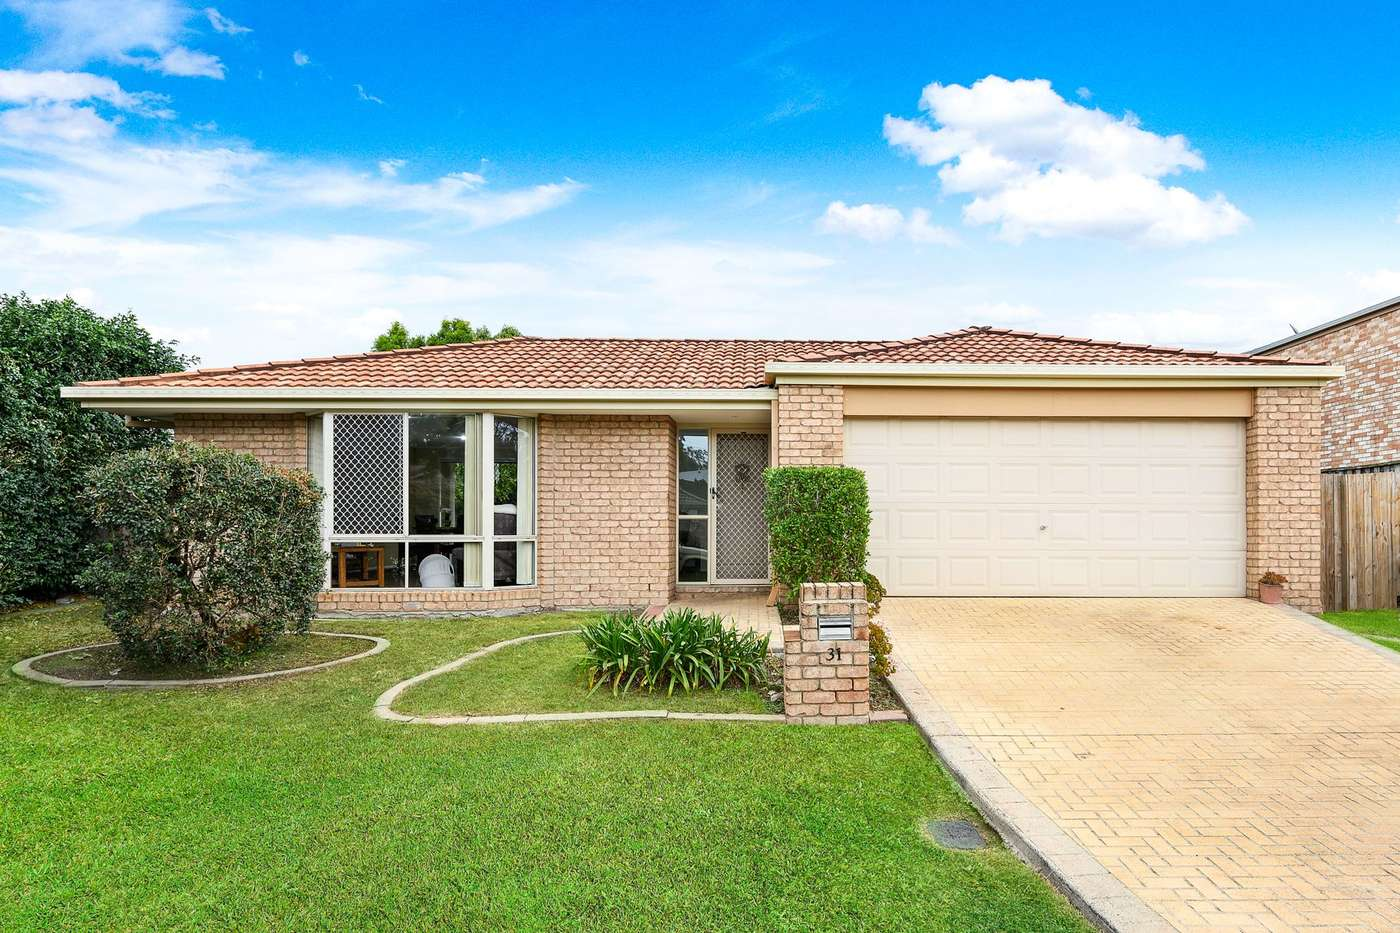 Main view of Homely house listing, 31 Groves Crescent, Boondall, QLD 4034